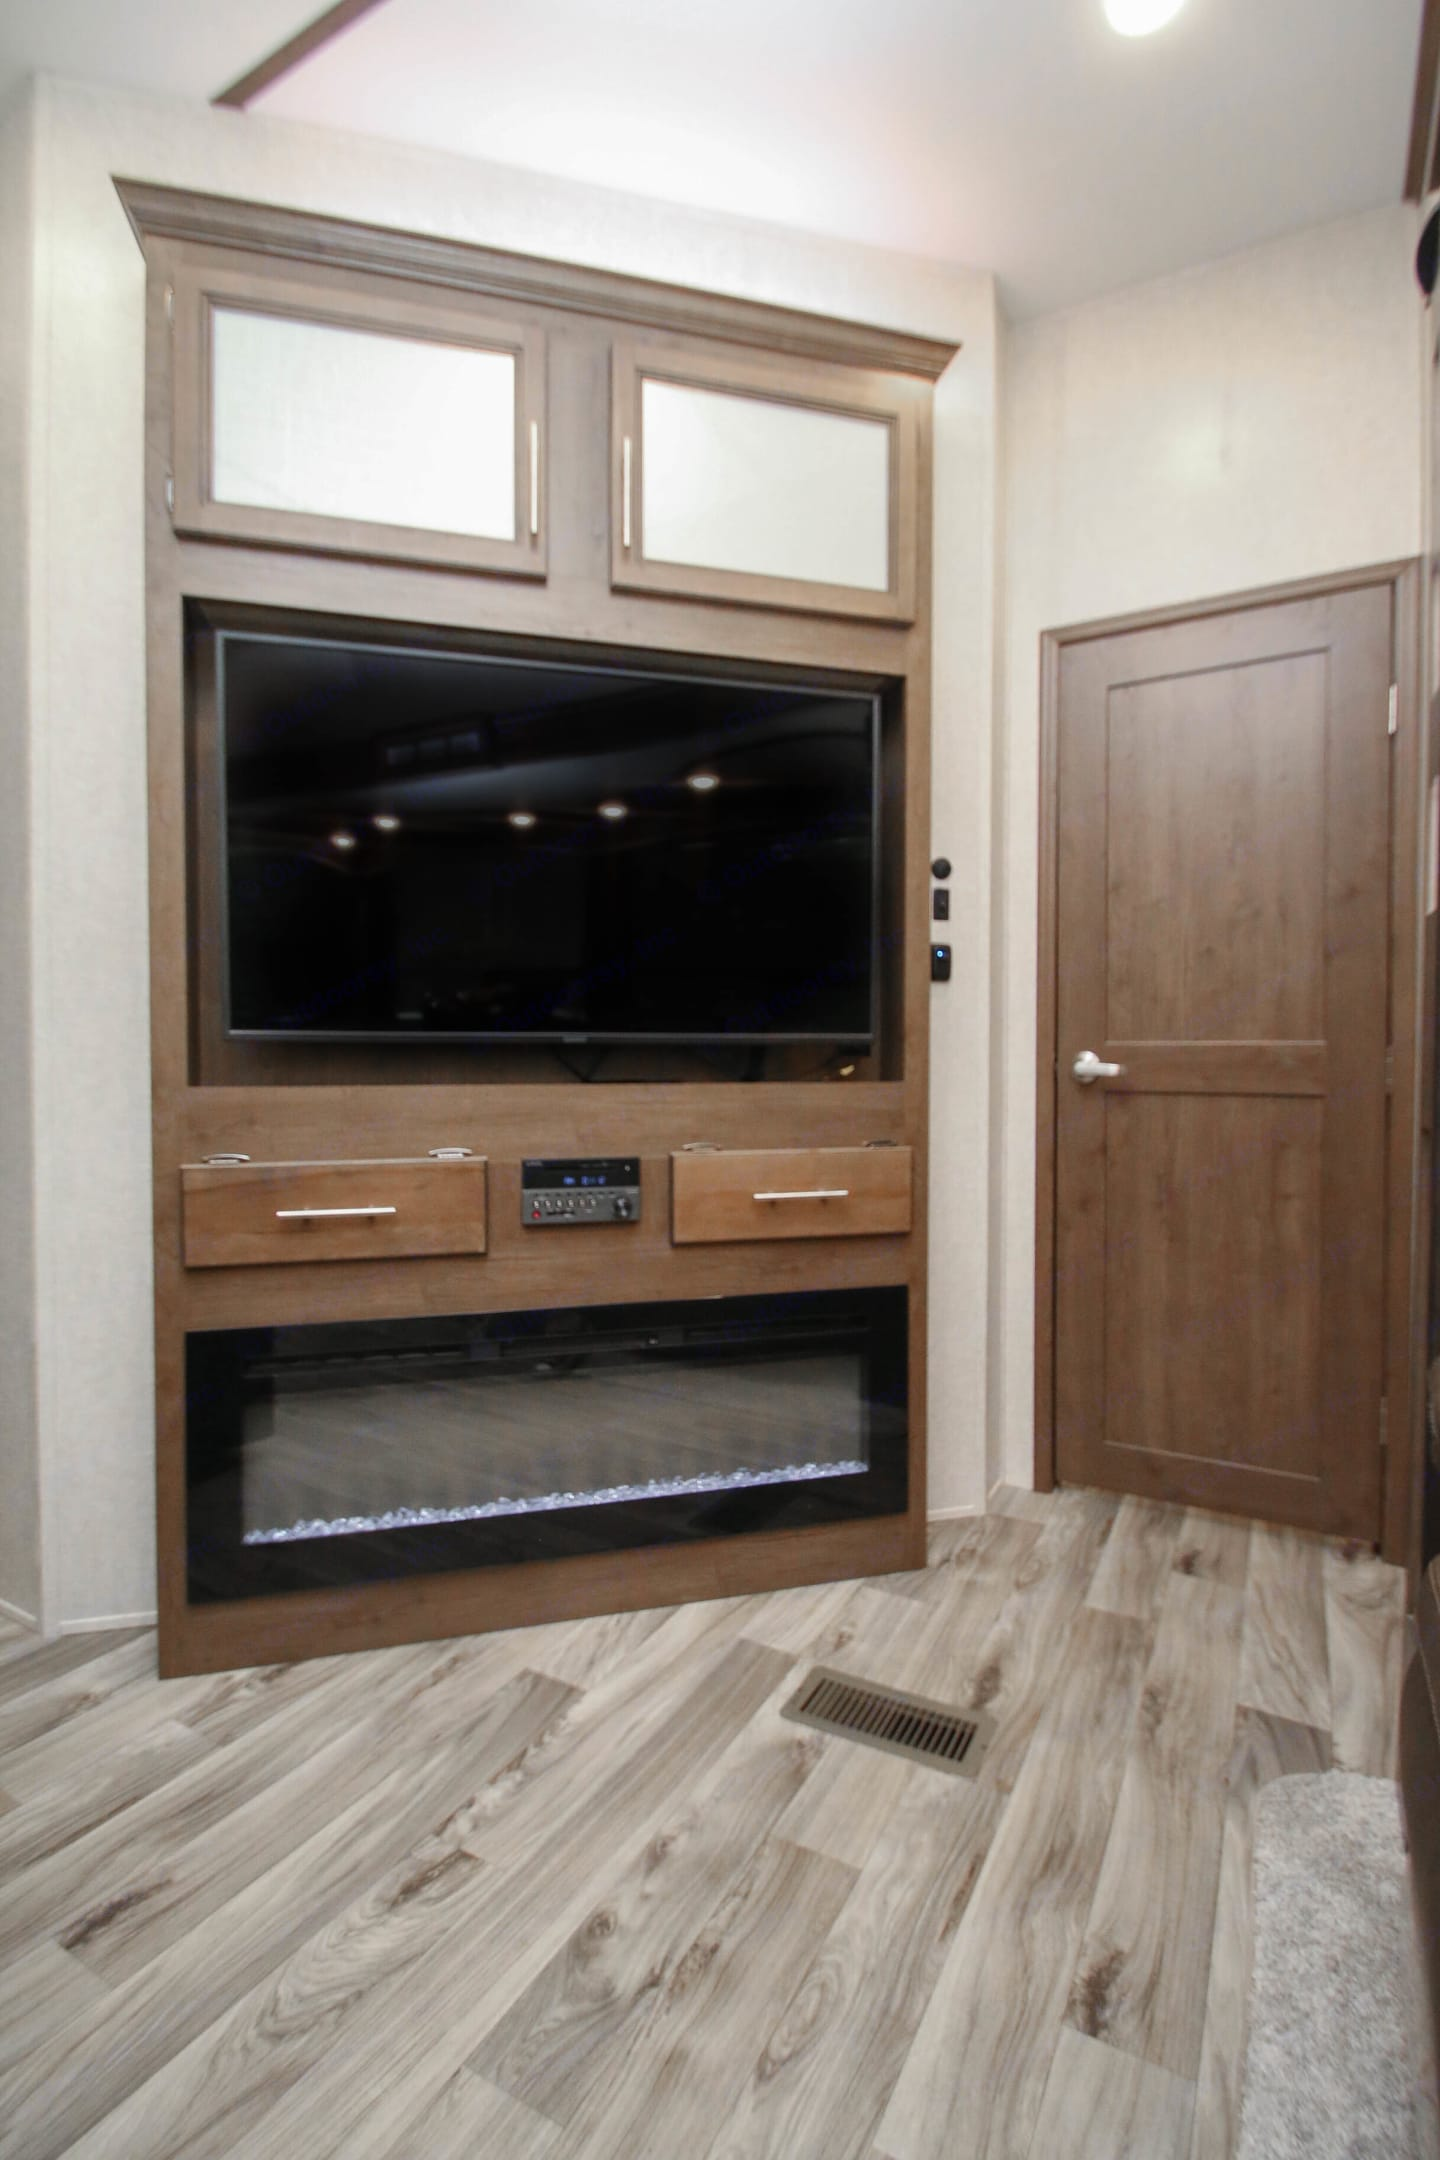 Enjoy a flat screen TV and fireplace while relaxing at night. . Keystone Cougar 2020